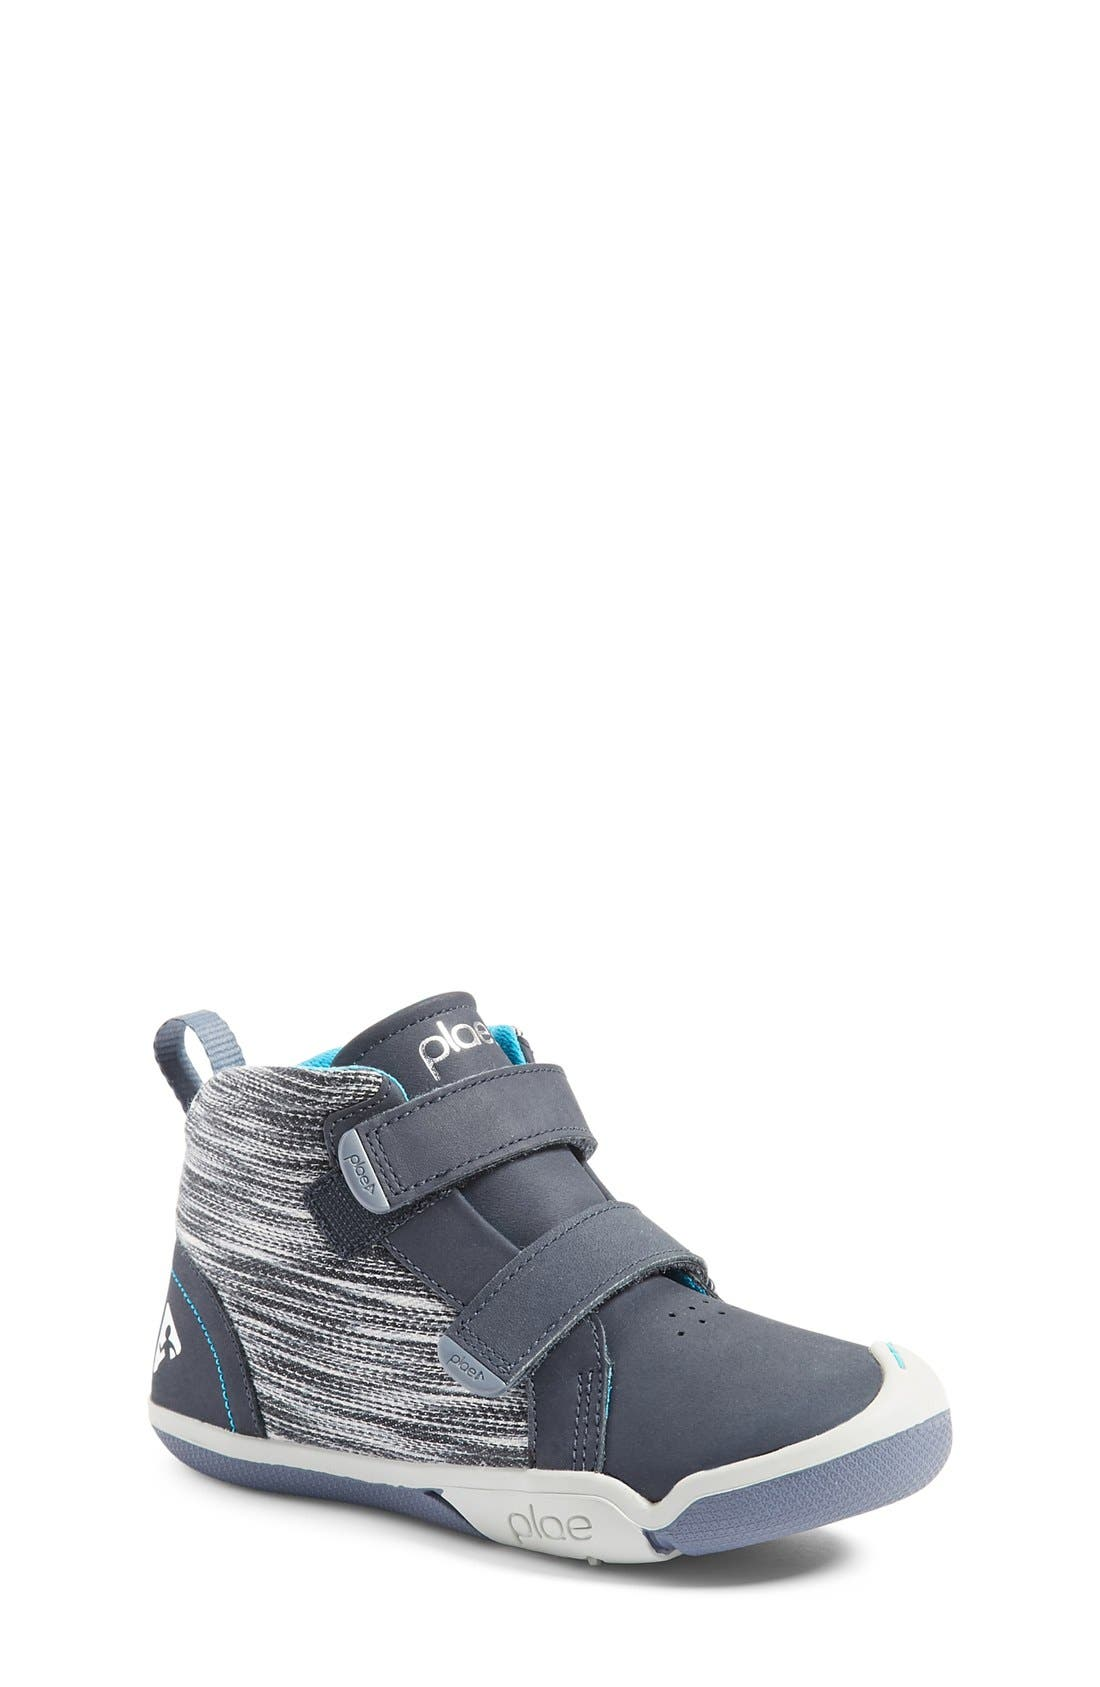 Max Customizable High Top Sneaker,                             Main thumbnail 1, color,                             LEATHER WIND